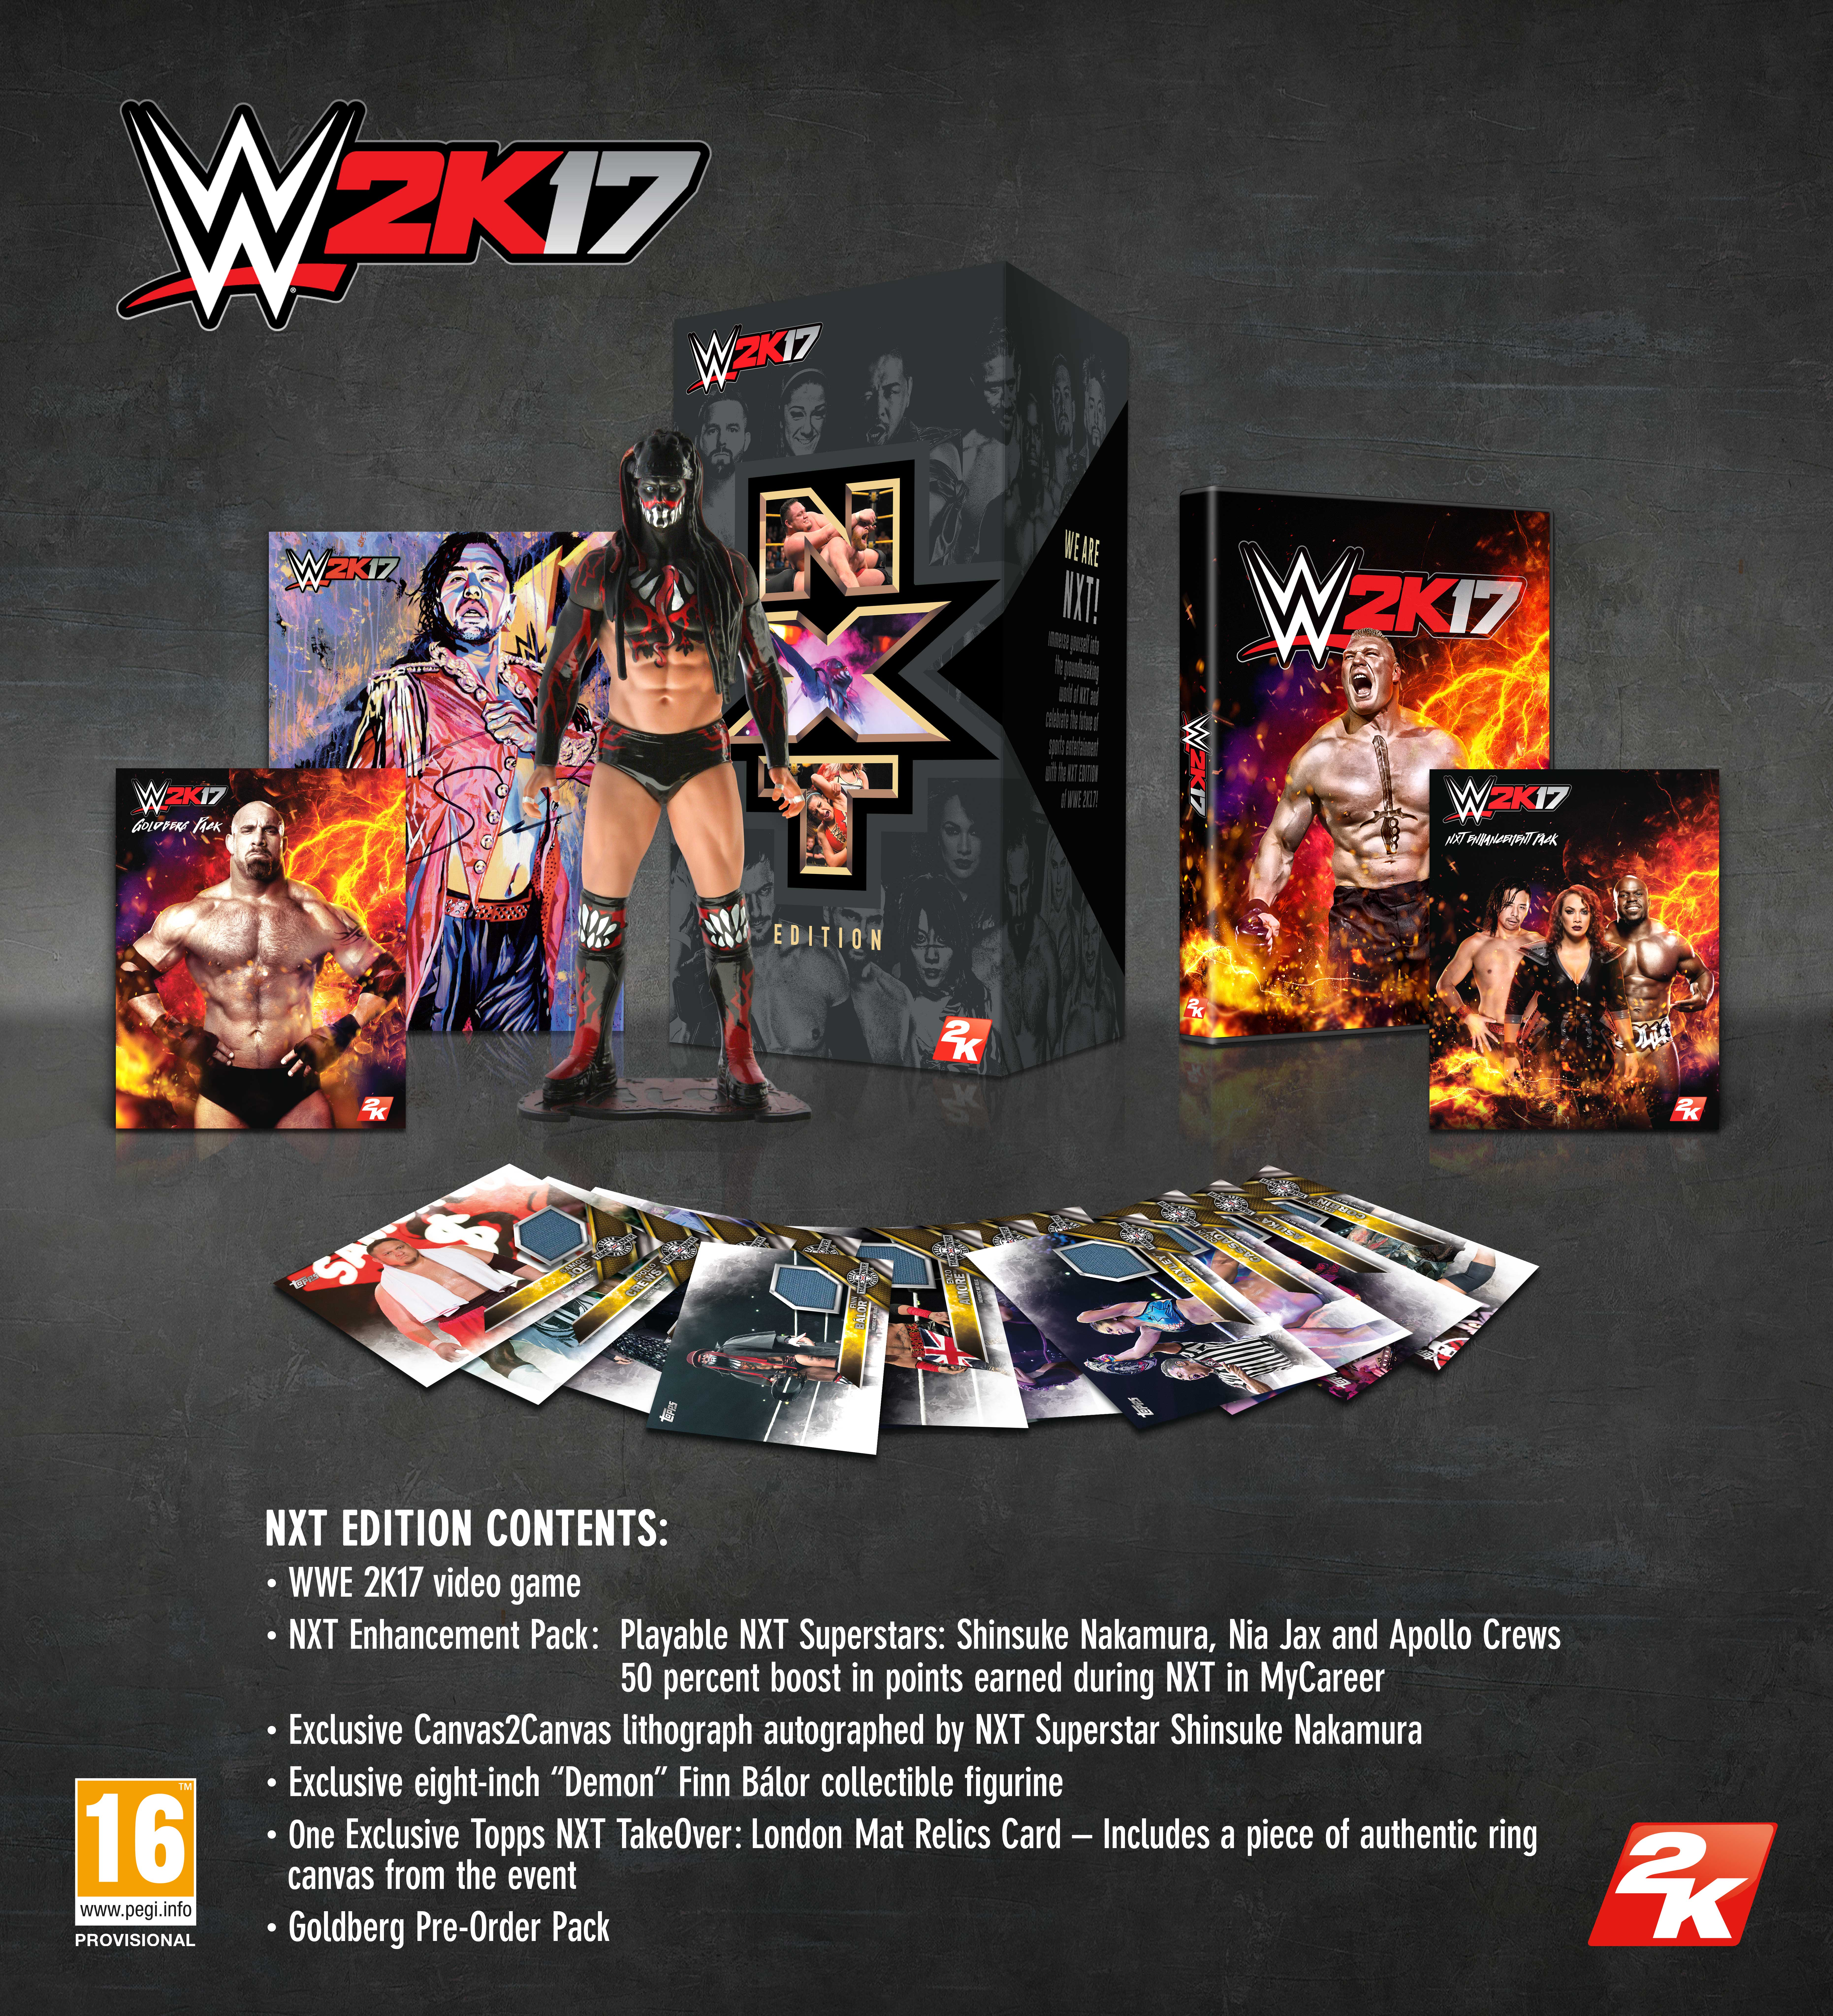 http://img.game.co.uk/images/content/SpecialEditions/WWE2K17_text.jpg